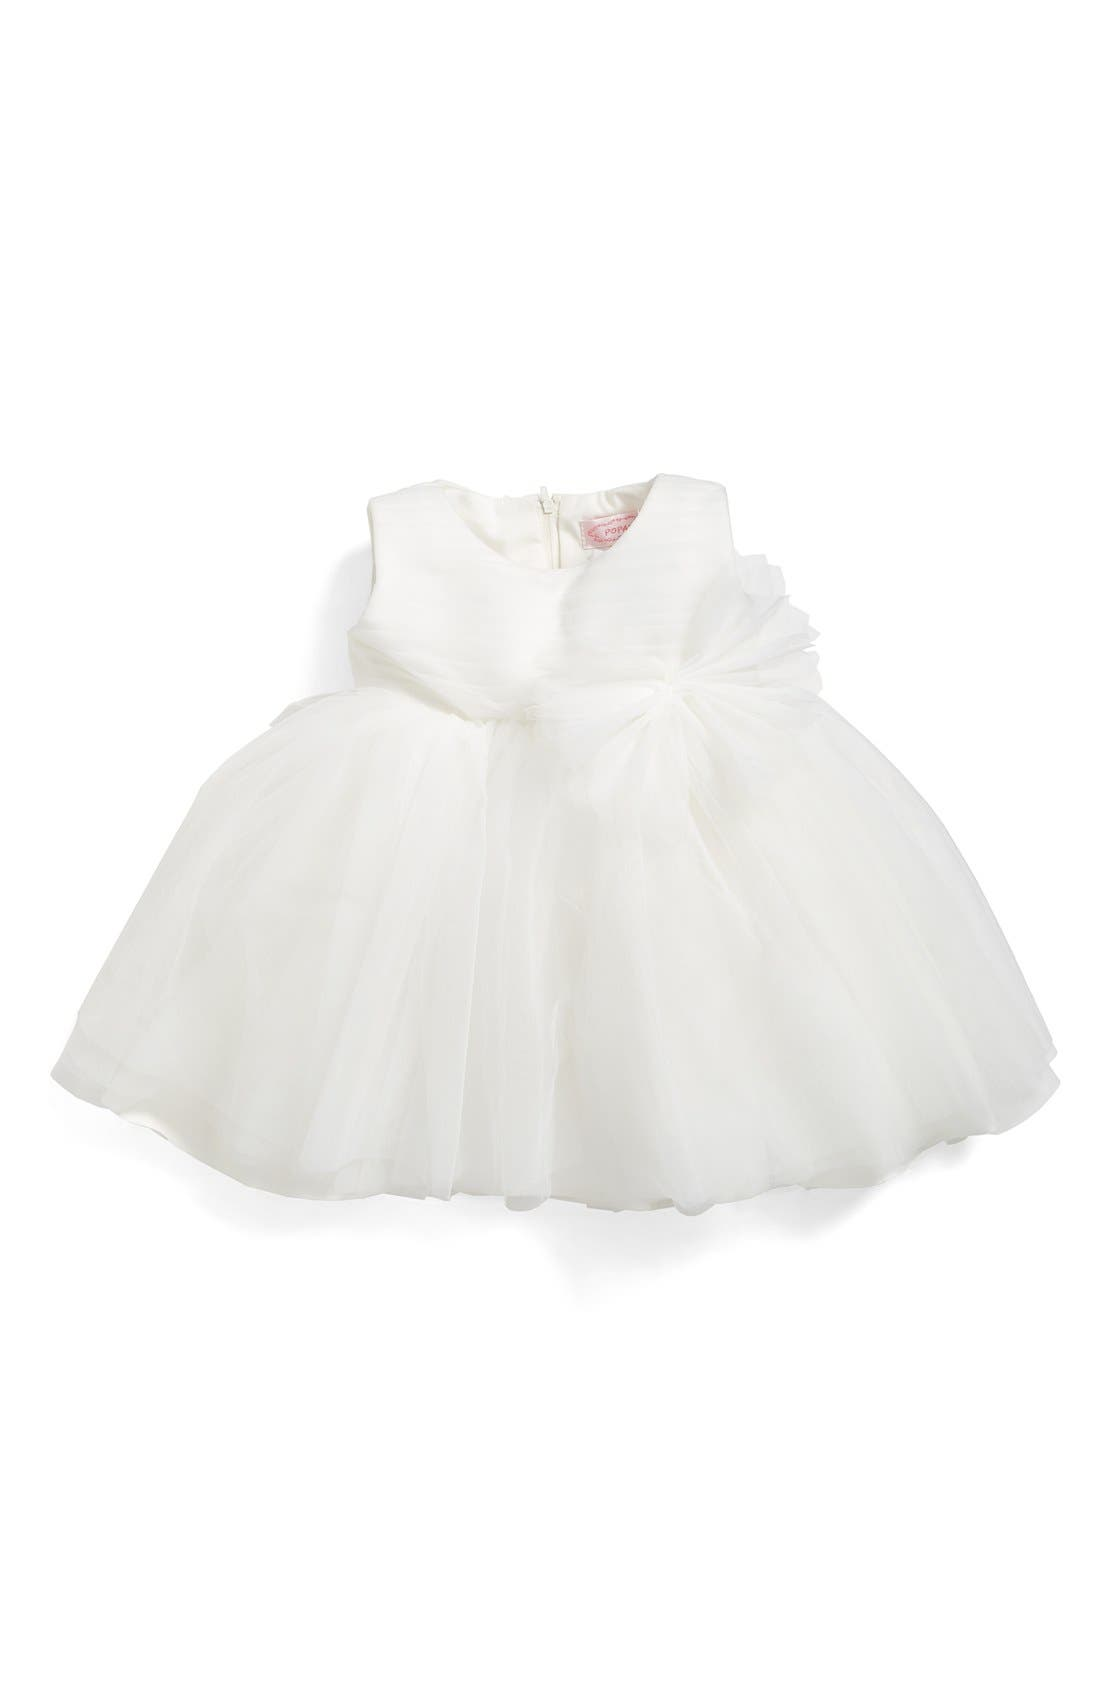 Fit & Flare Tulle Dress,                             Main thumbnail 1, color,